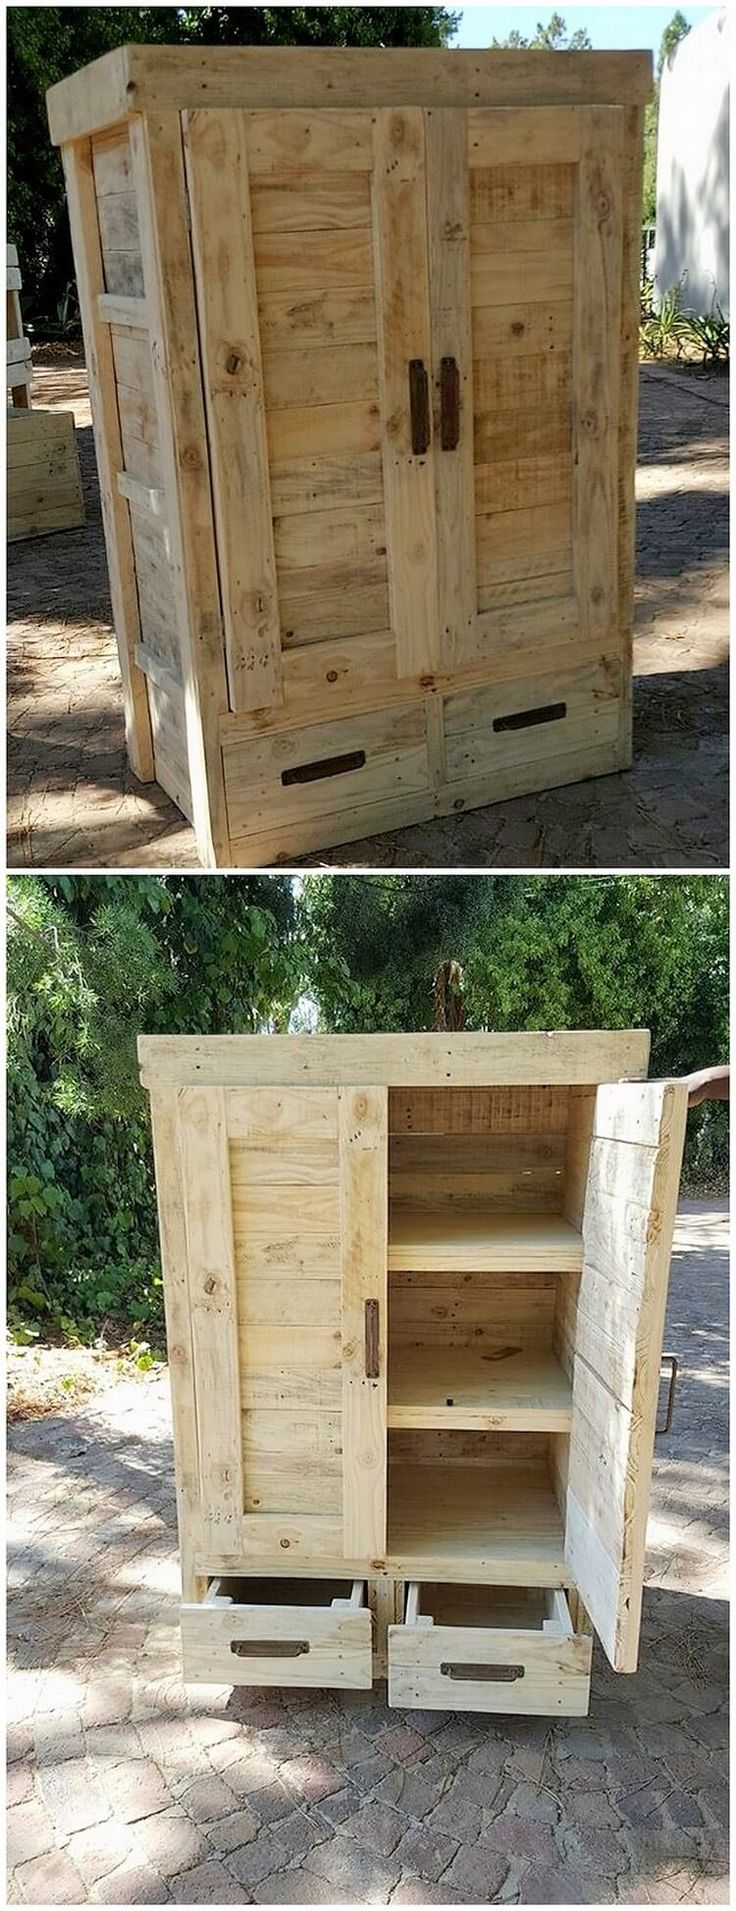 Best 25 wooden pallet furniture ideas only on pinterest for What to make out of those old wood pallets